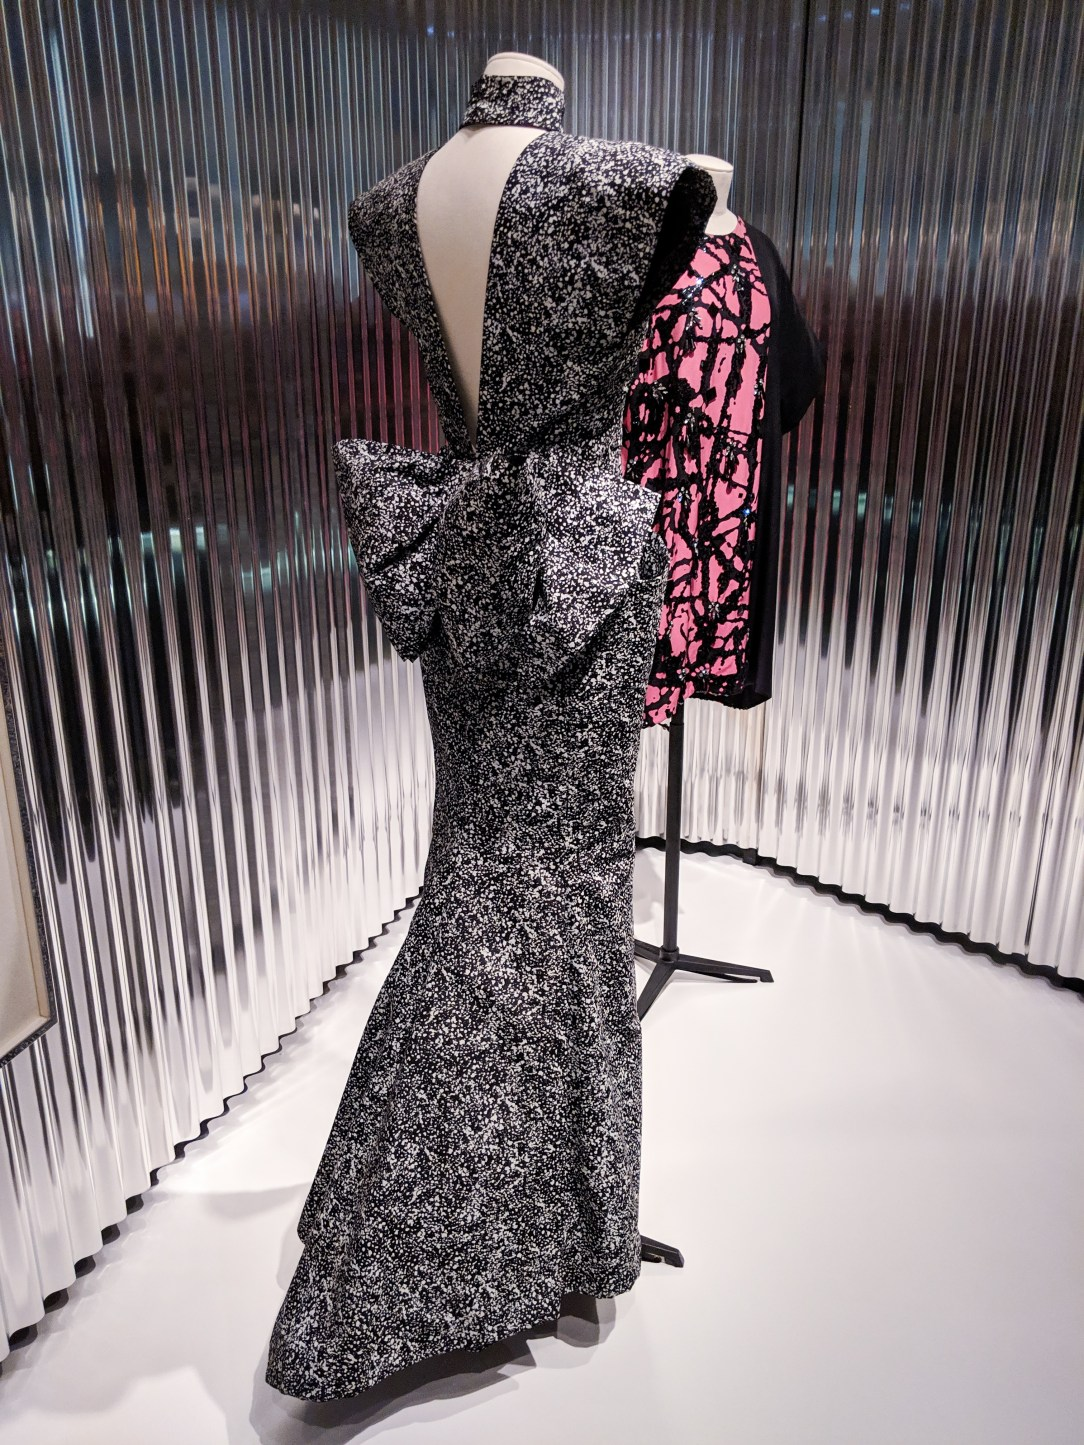 Jackson Pollock inspired Dior gown